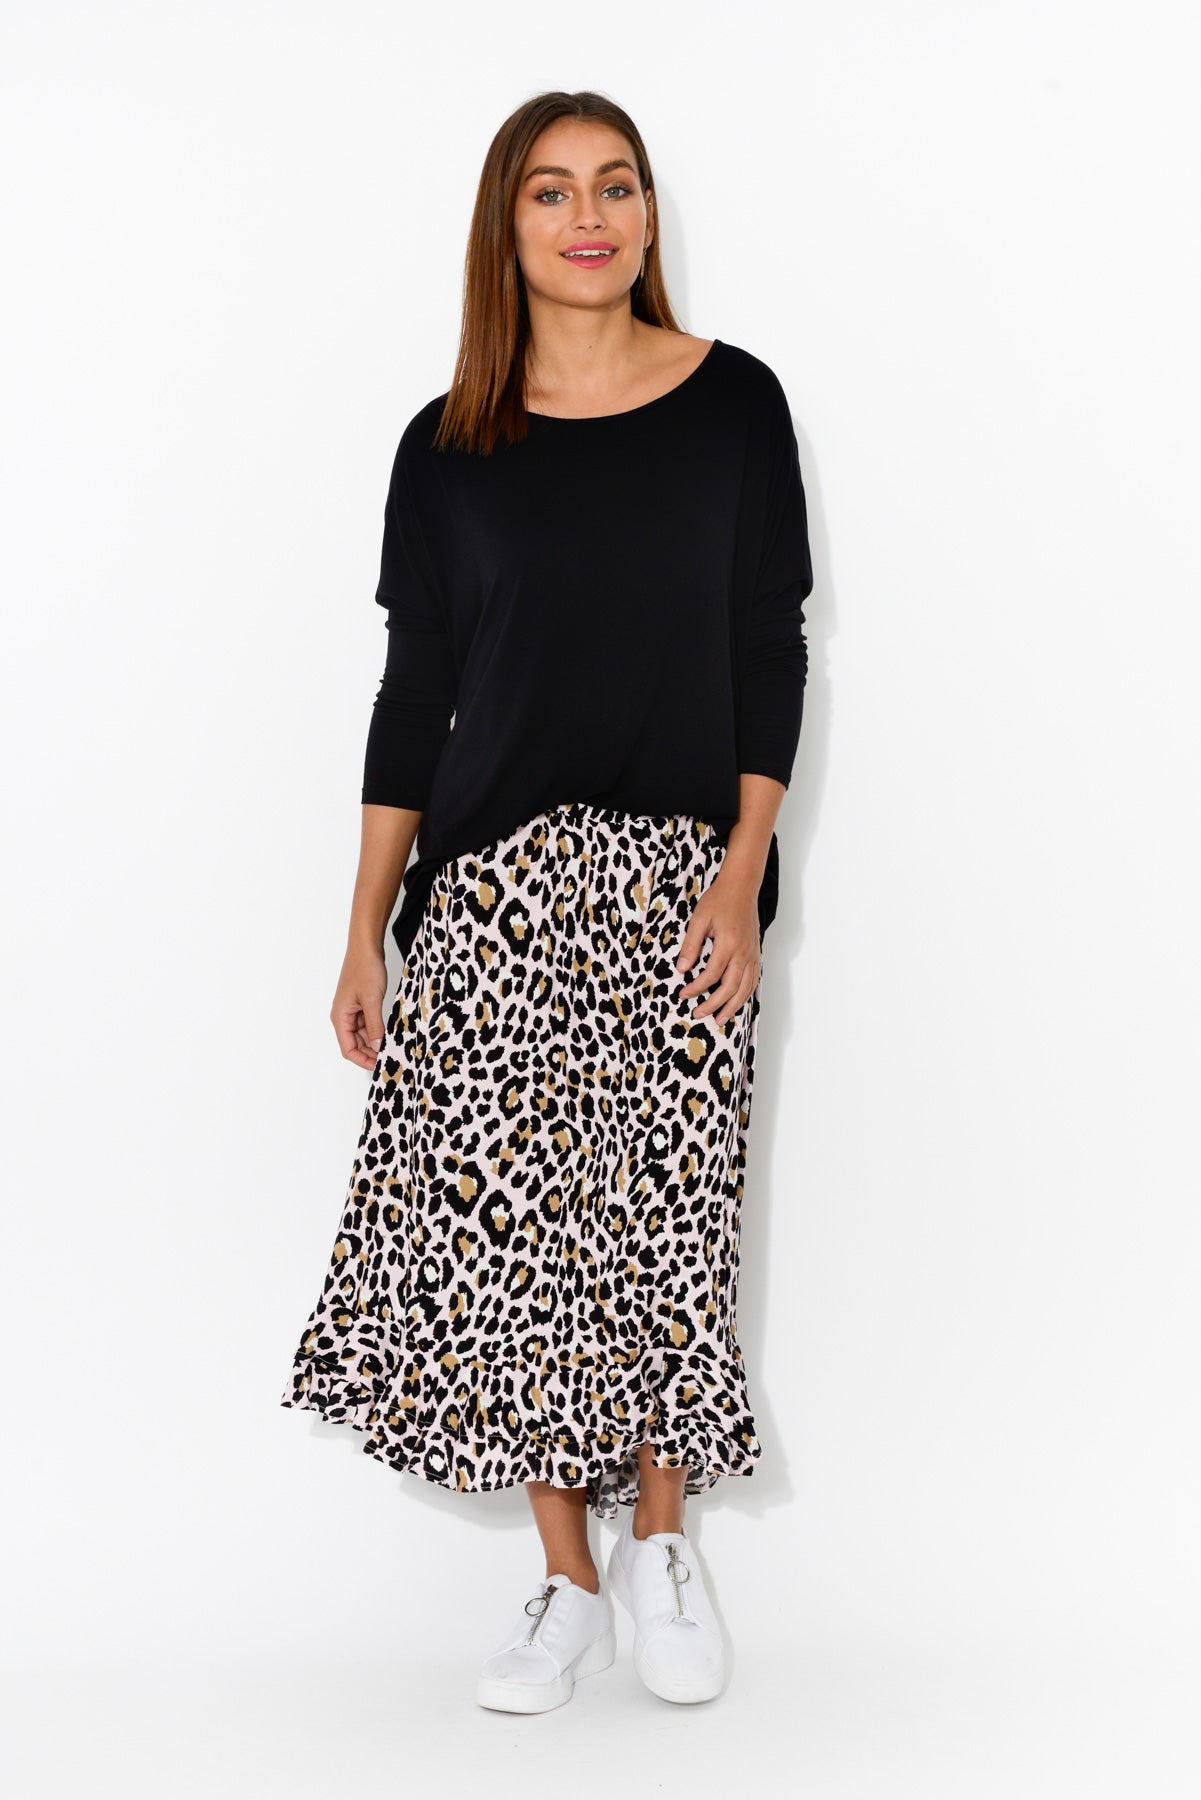 Eve Pink Leopard Hi Lo Skirt - Blue Bungalow